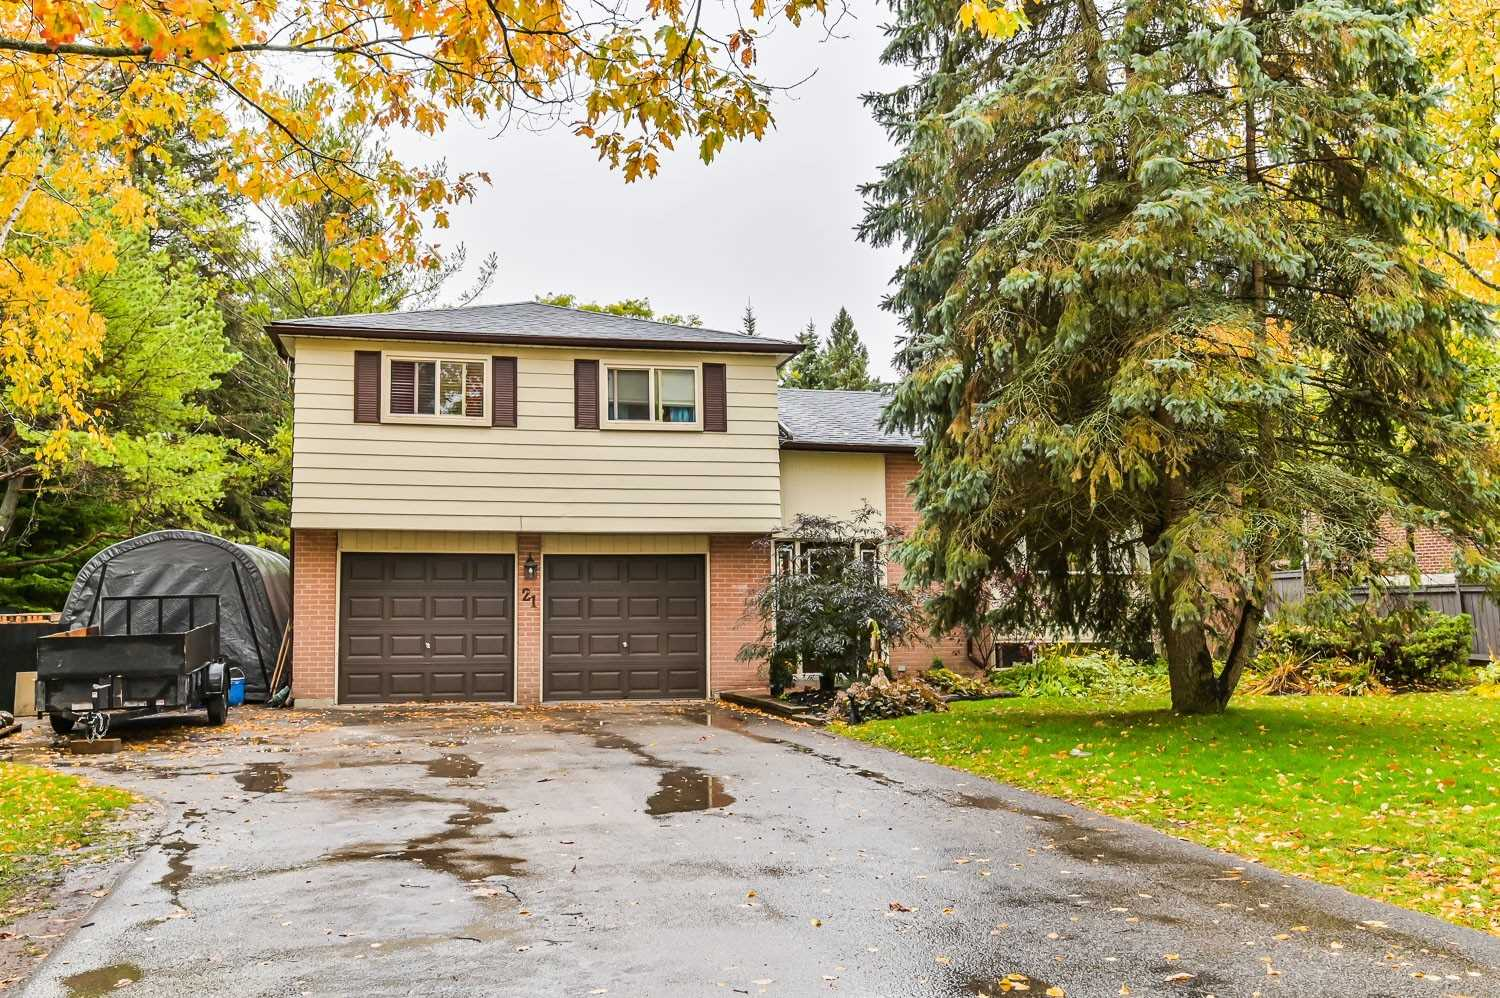 pictures of house for sale MLS: N4956384 located at 21 Jonathan St, Uxbridge L9P1B6